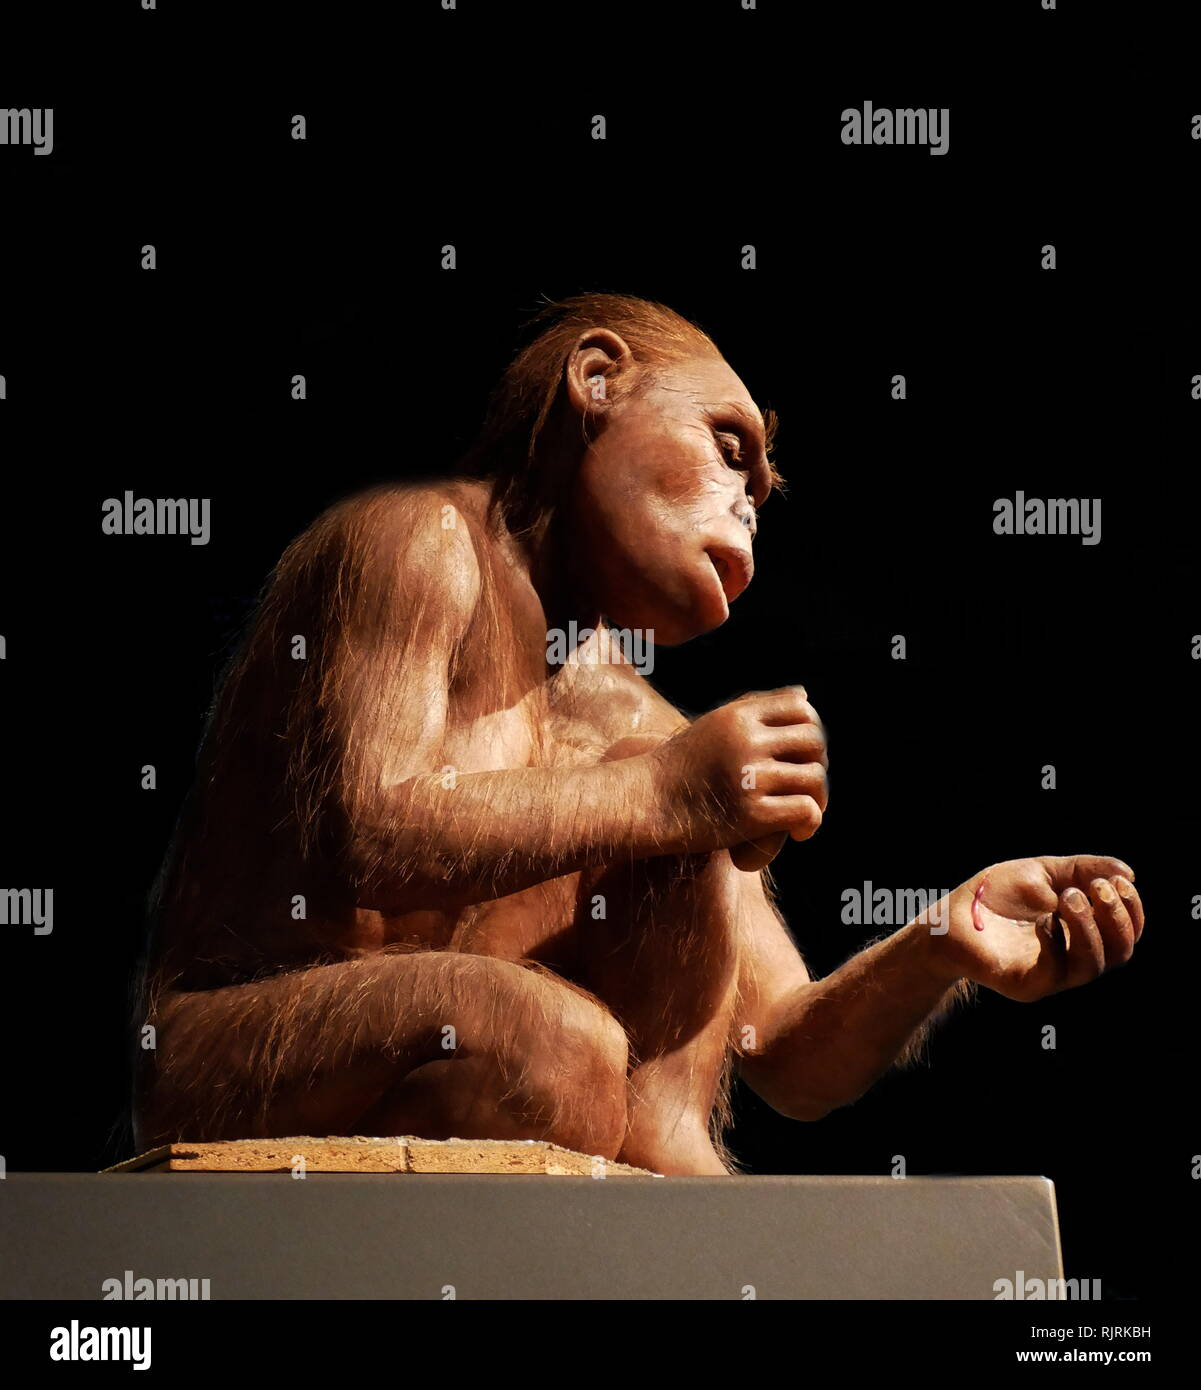 Reconstructed female Homo habilis; a proposed archaic species of Homo, which lived between roughly 2.1 and 1.5 million years ago Stock Photo